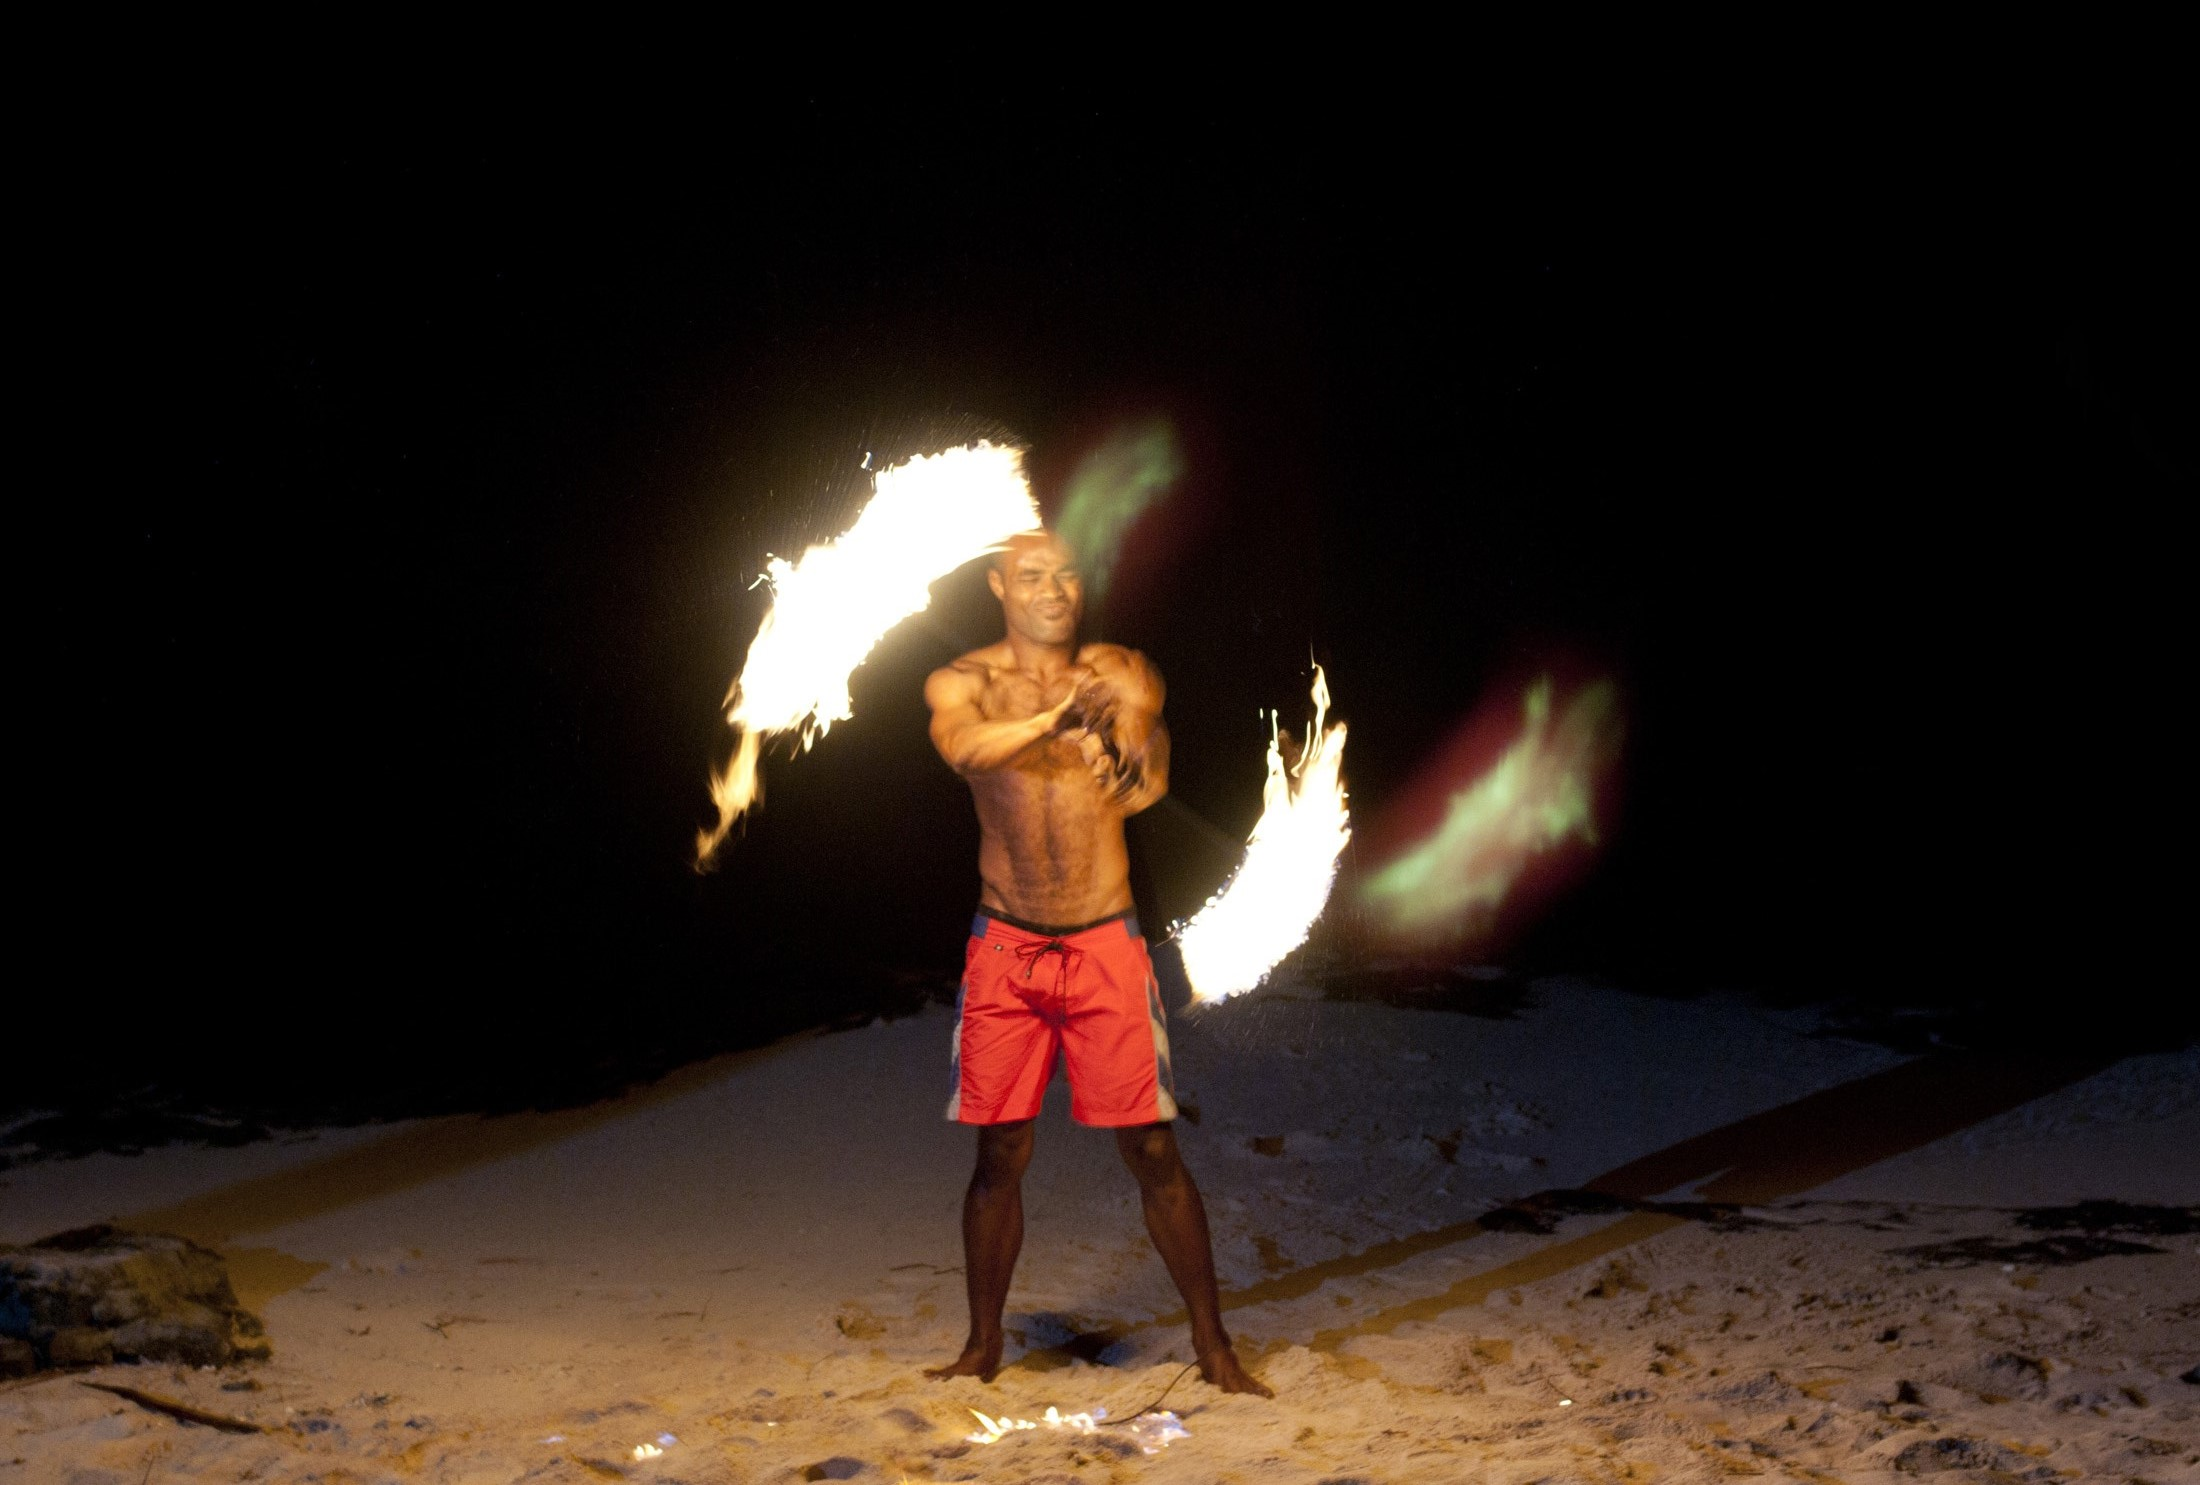 Fijian fire dancer performing with flaming branches on a sandy beach twirling them around his naked torso